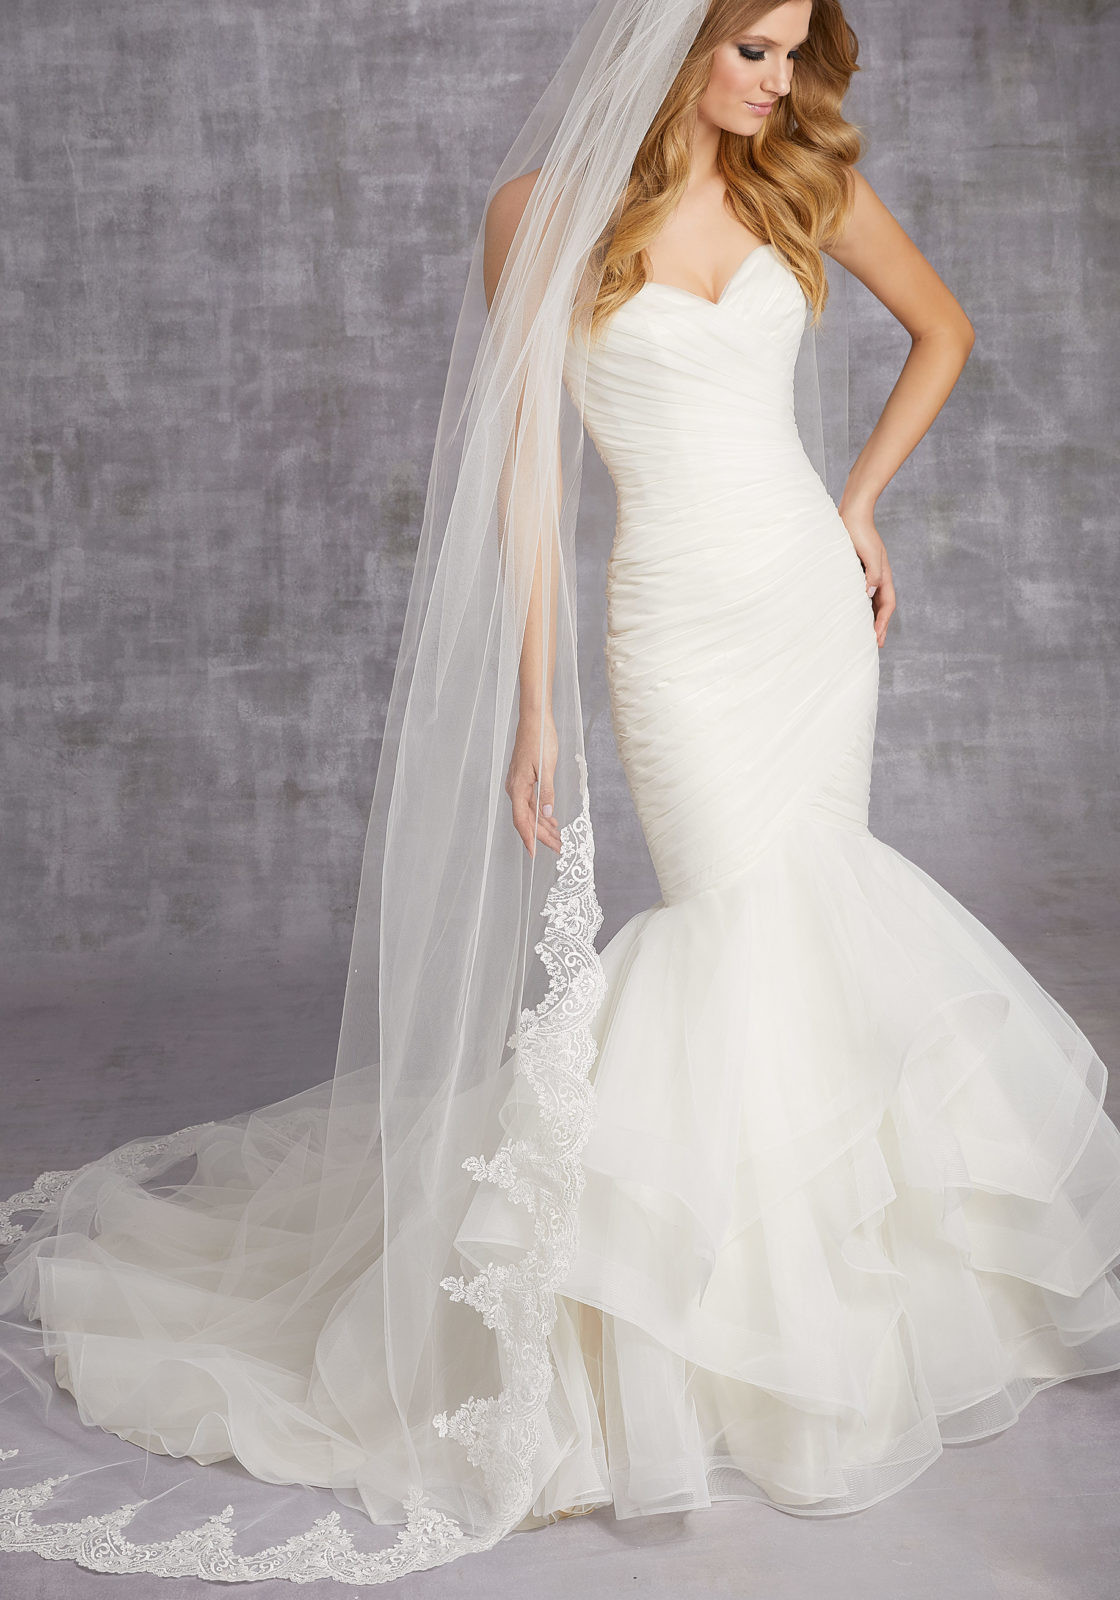 Uk Wedding Veils  Scalloped Lace Veil Beaded With Clear Sequins